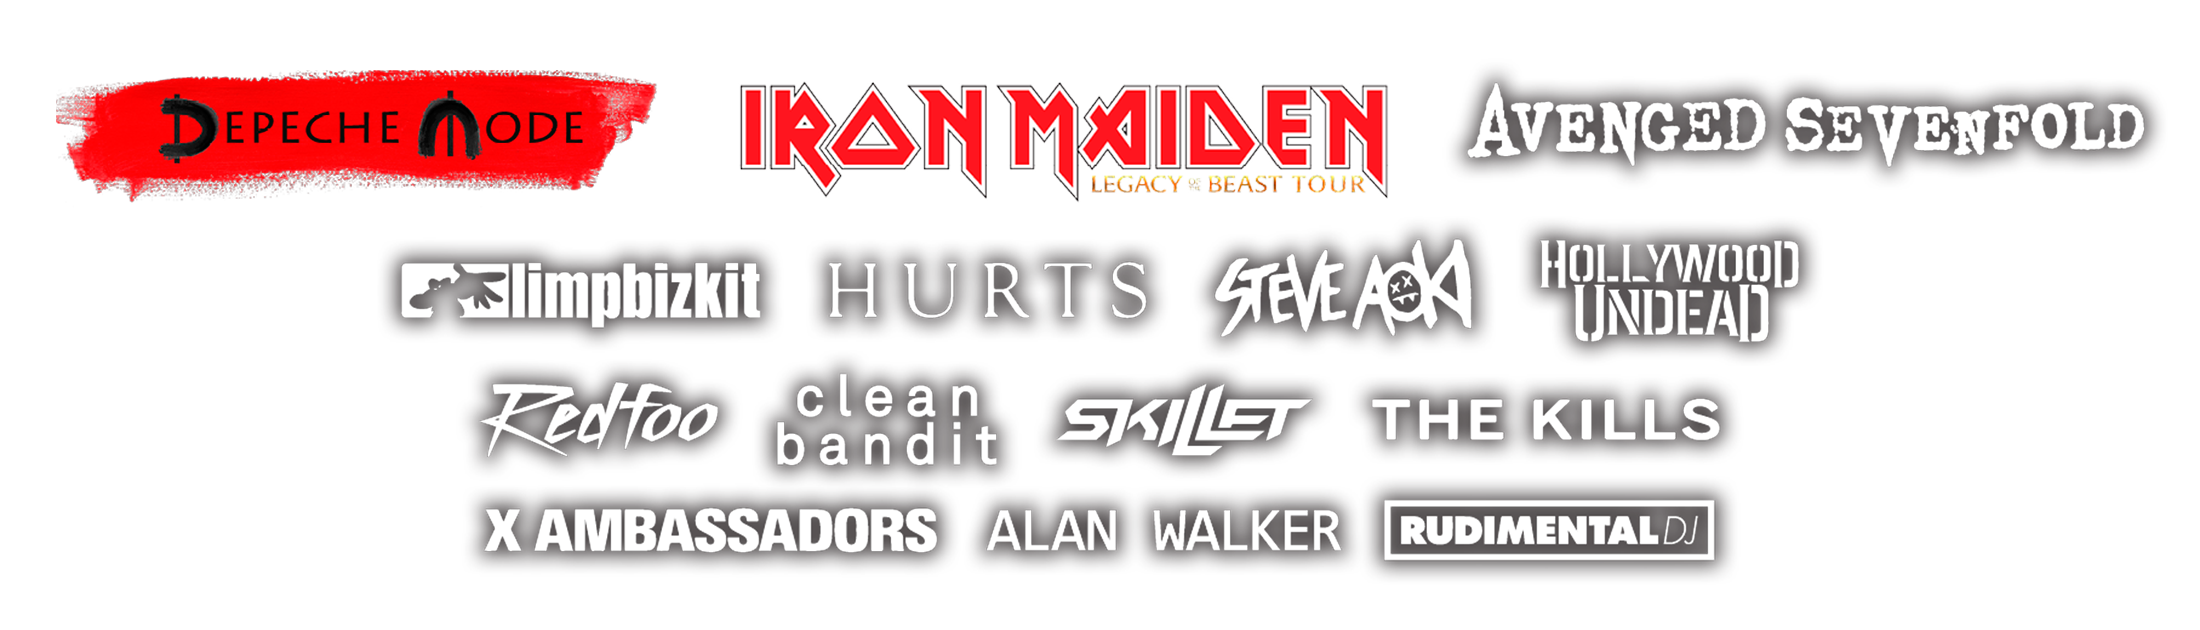 Depeche mode, Iron Maiden, Hurts, Hollywood Undead, Rudimental Live